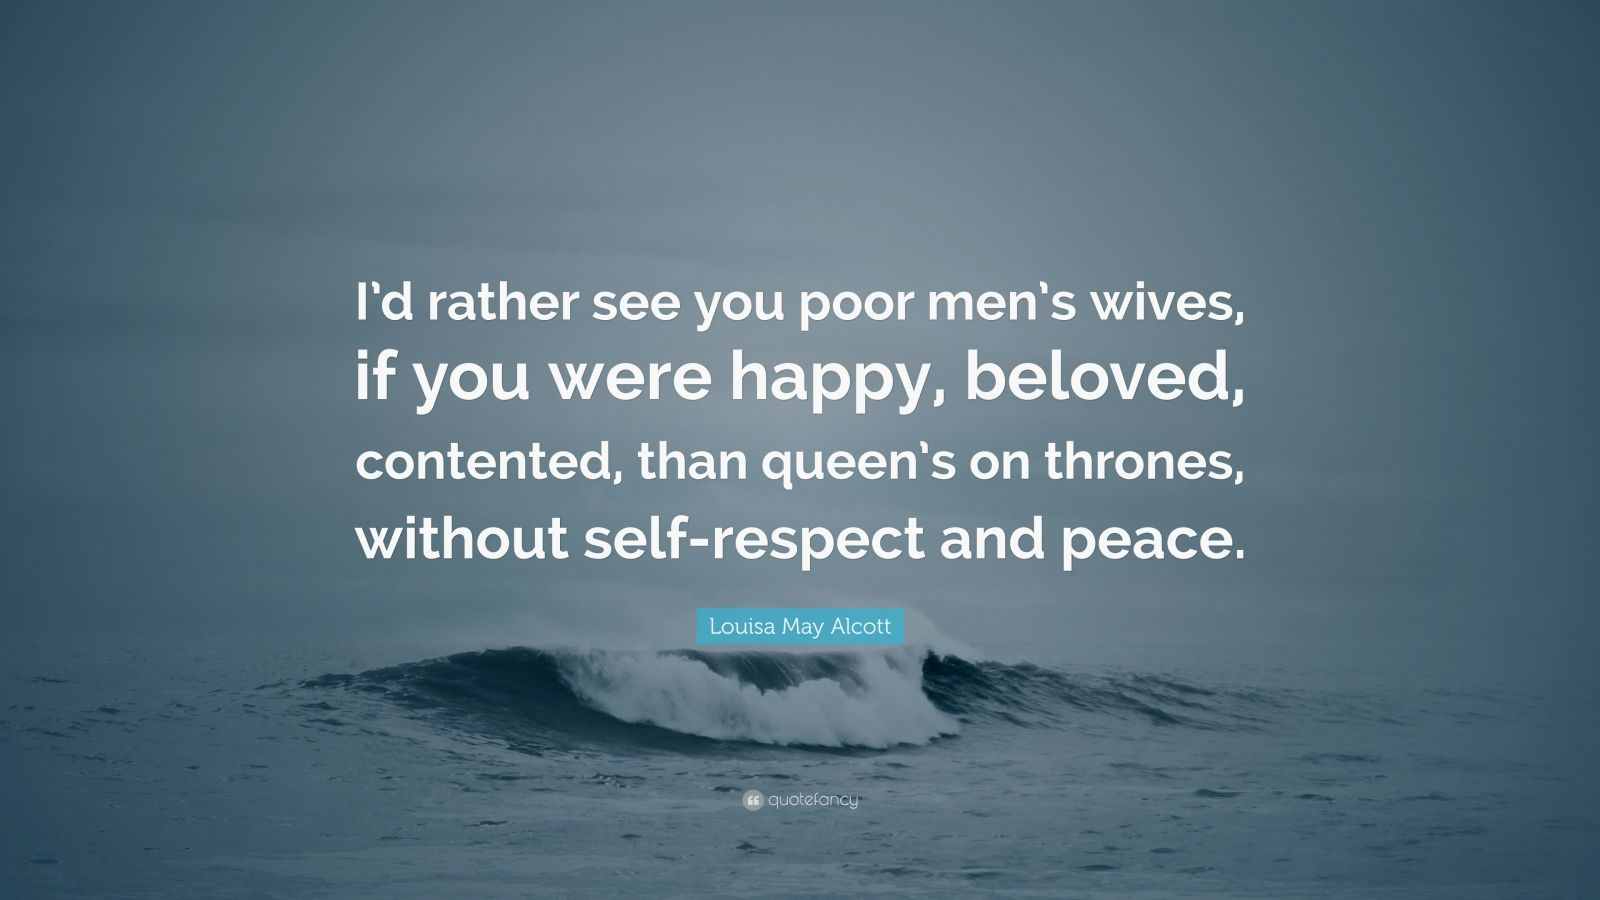 """Louisa May Alcott Quote: """"I'd rather see you poor men's wives, if you were happy, beloved, contented, than queen's on thrones, without self-respect and peace."""""""